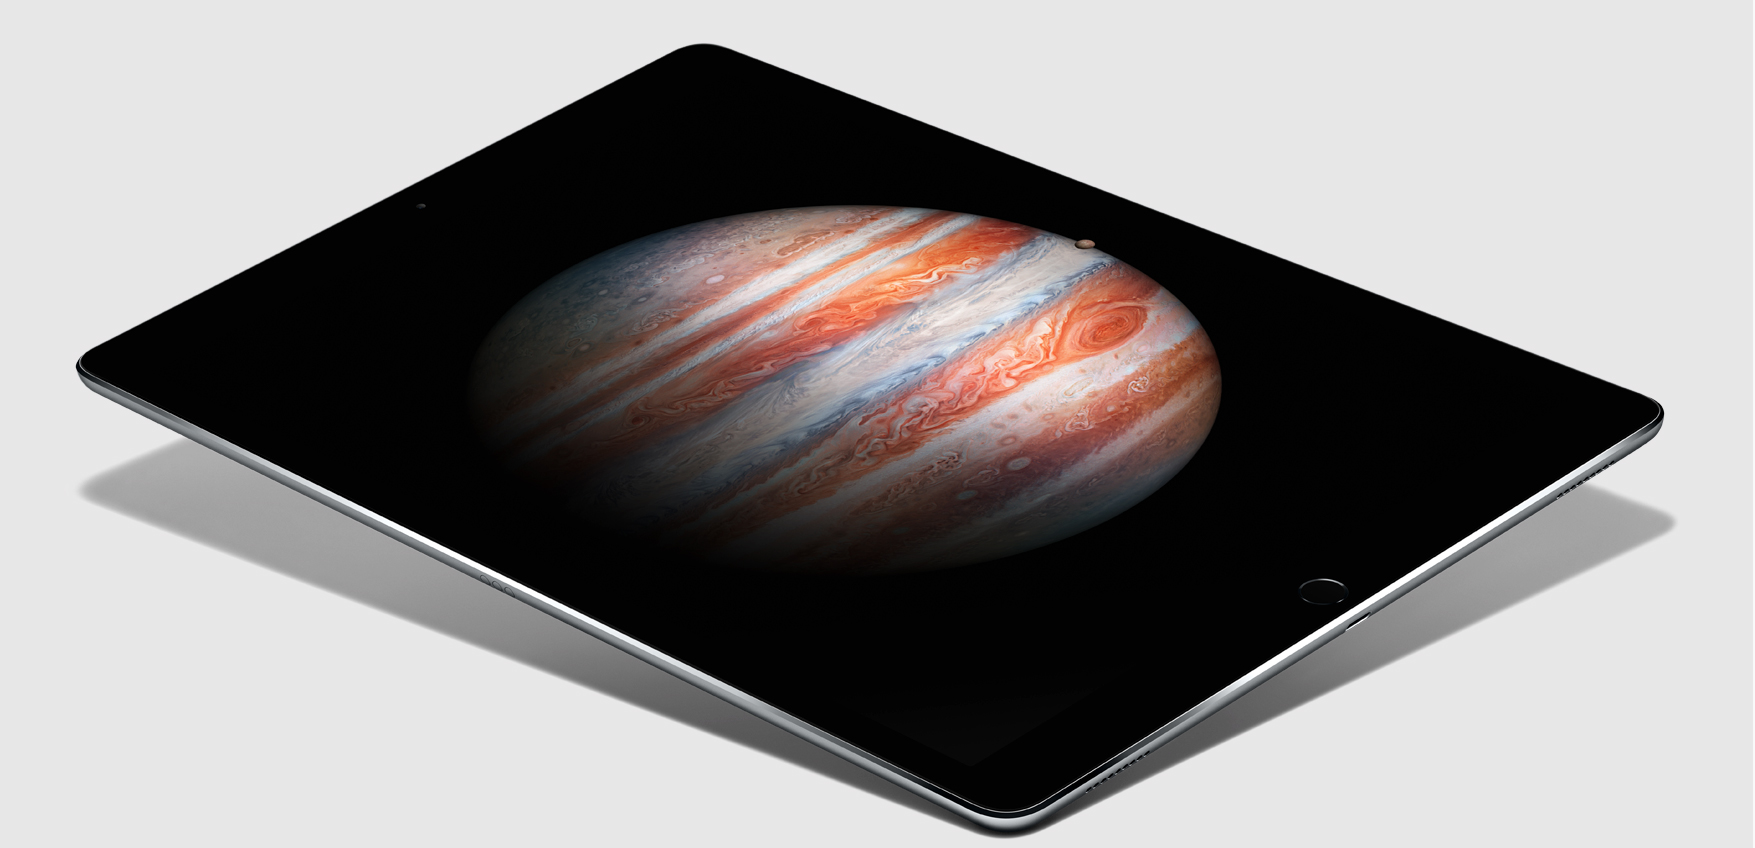 The 'iPad Air 3' is shaping up to be a mini version of the iPad Pro